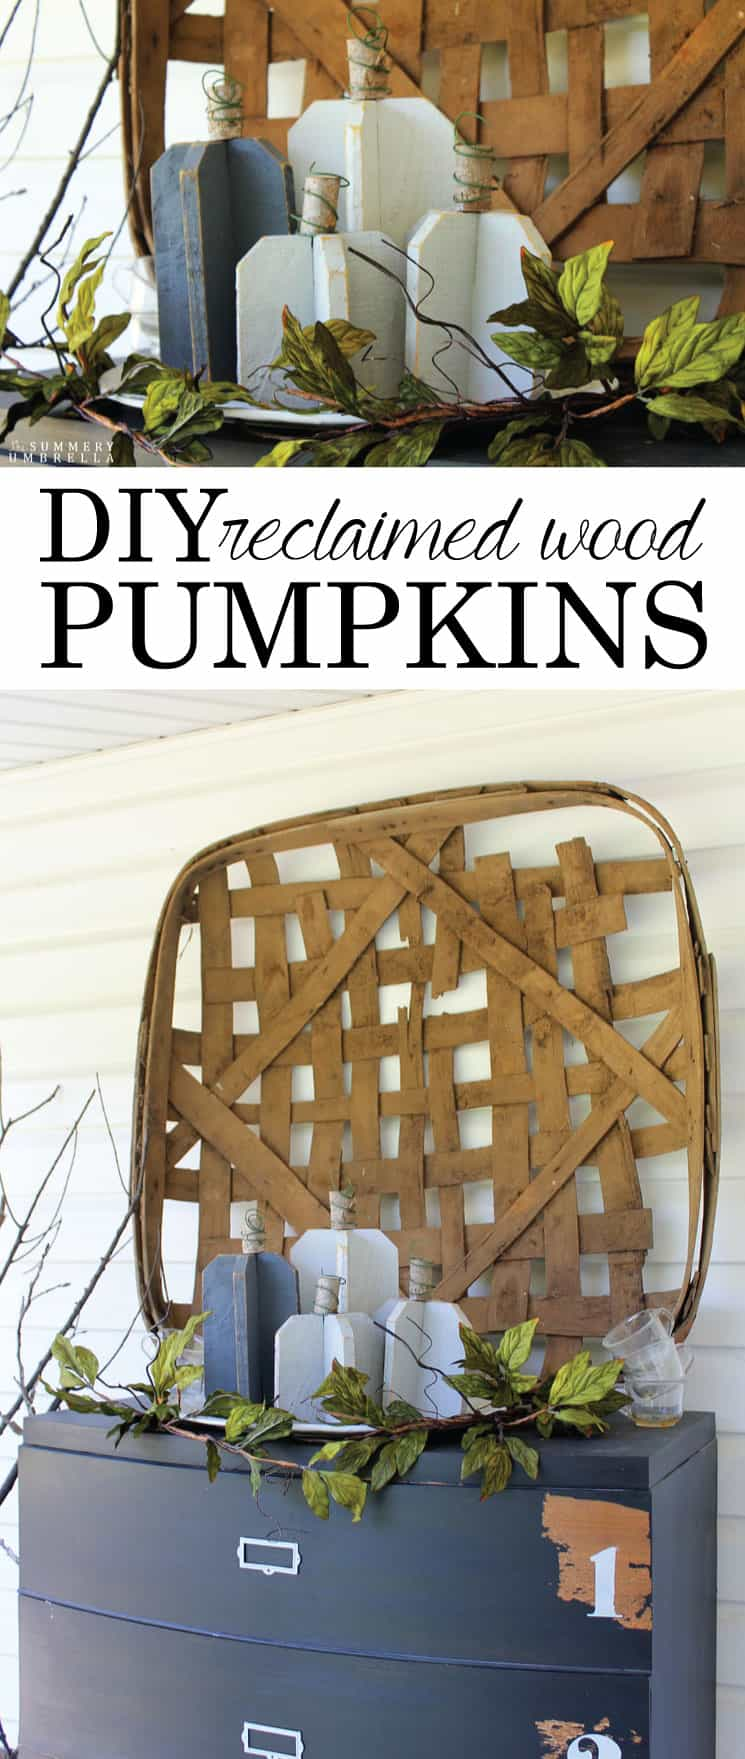 All you need is a few scraps of wood, a branch, wire, and paint to create these super versatile DIY reclaimed wood pumpkins. So easy and pretty too!